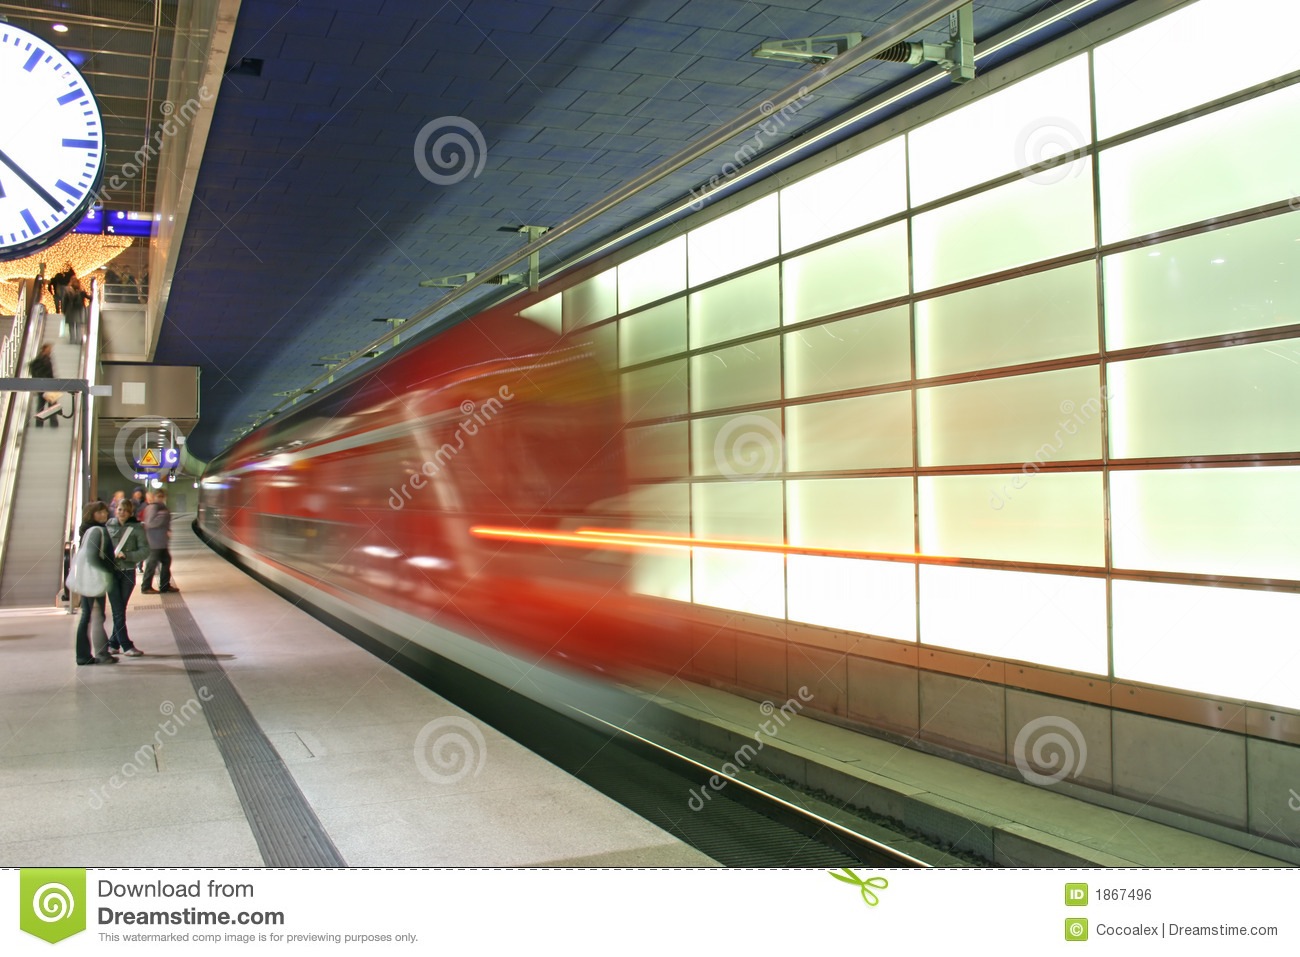 The subway in the Potsdamer Platz